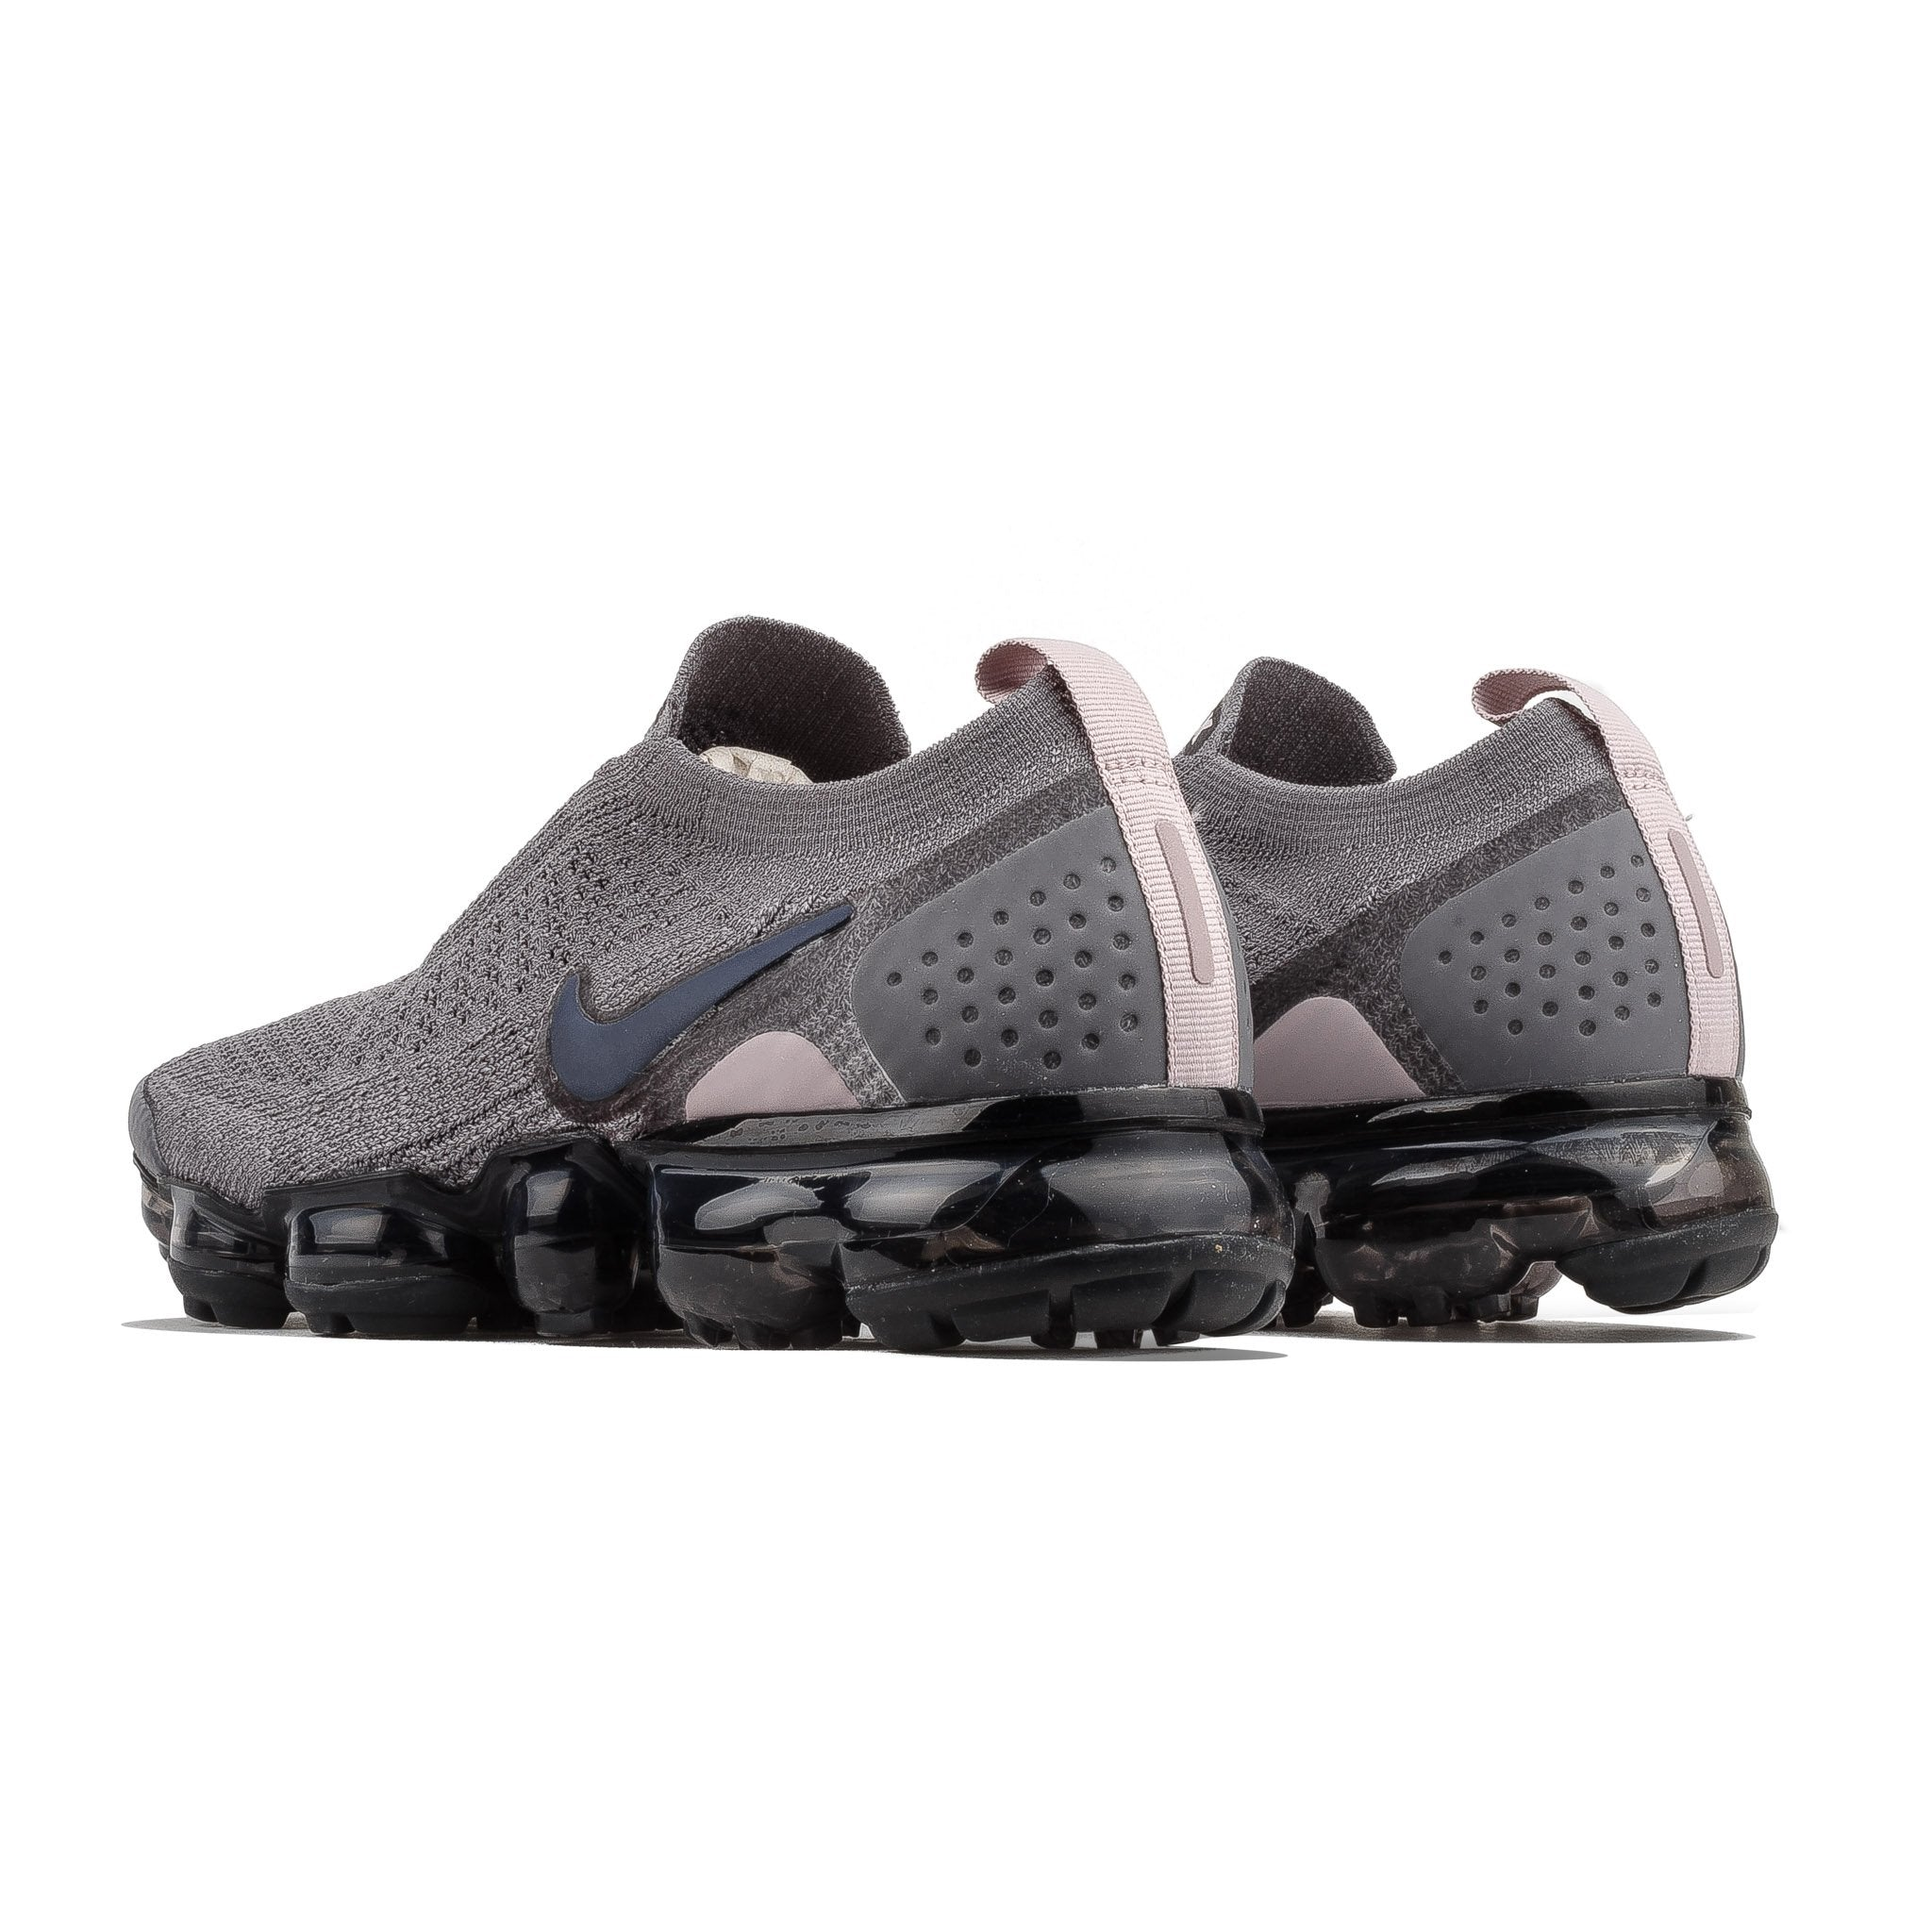 official photos ed523 5d1d1 W Air Vapormax FK Moc 2 AJ6599-003 Gunsmoke – Capsule Online